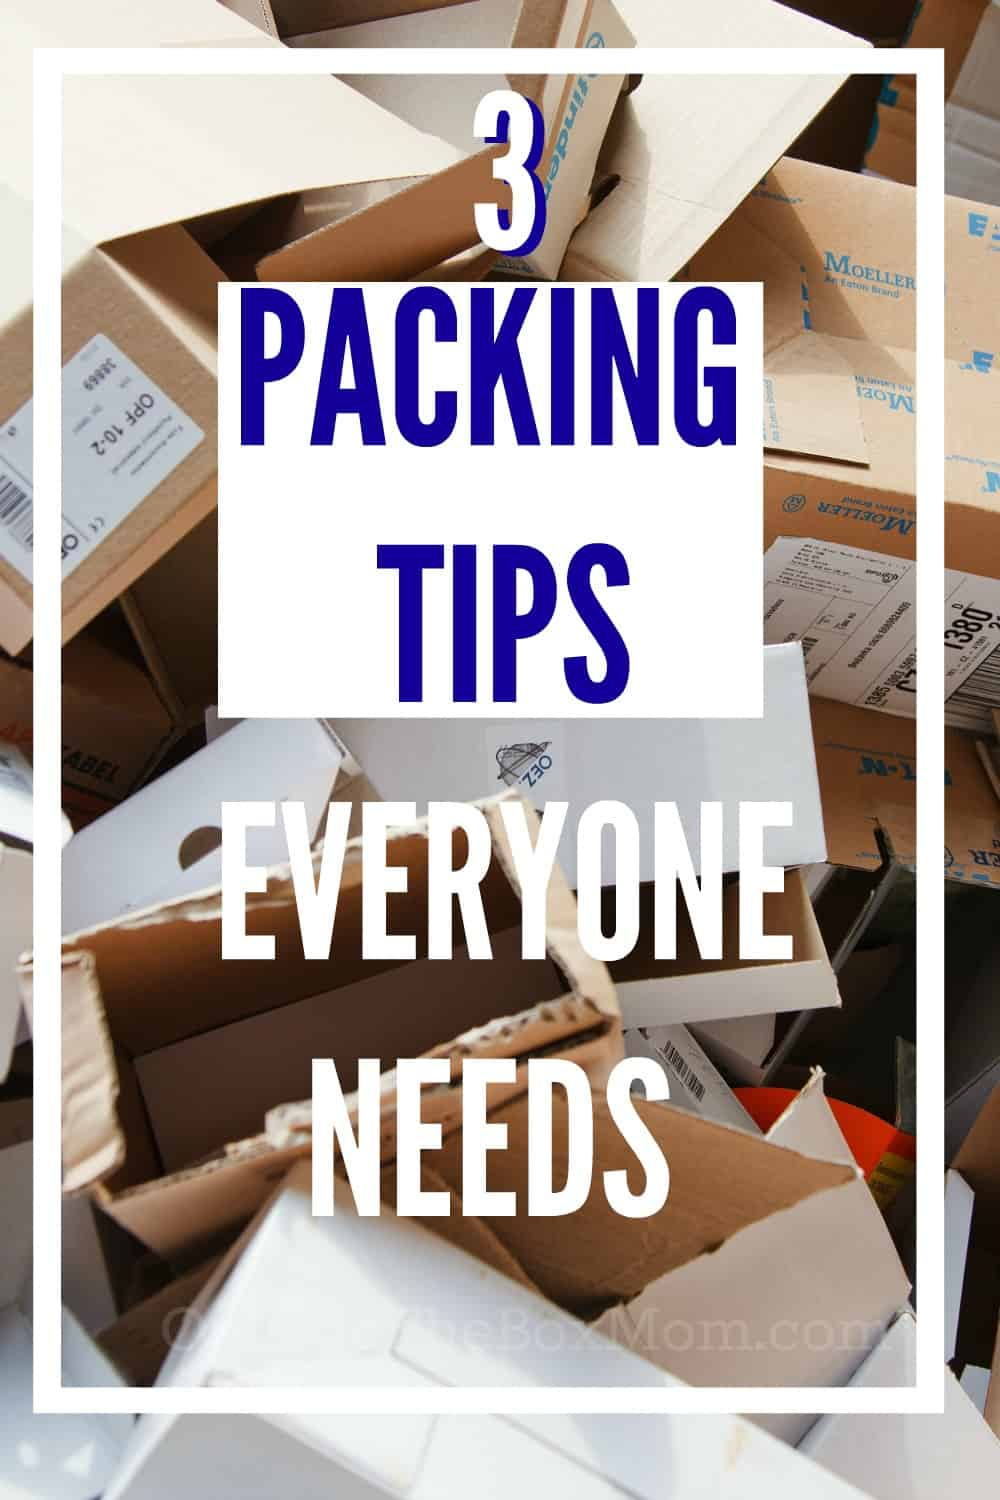 When it comes to your next move, does your checklist include the three most important packing tips?